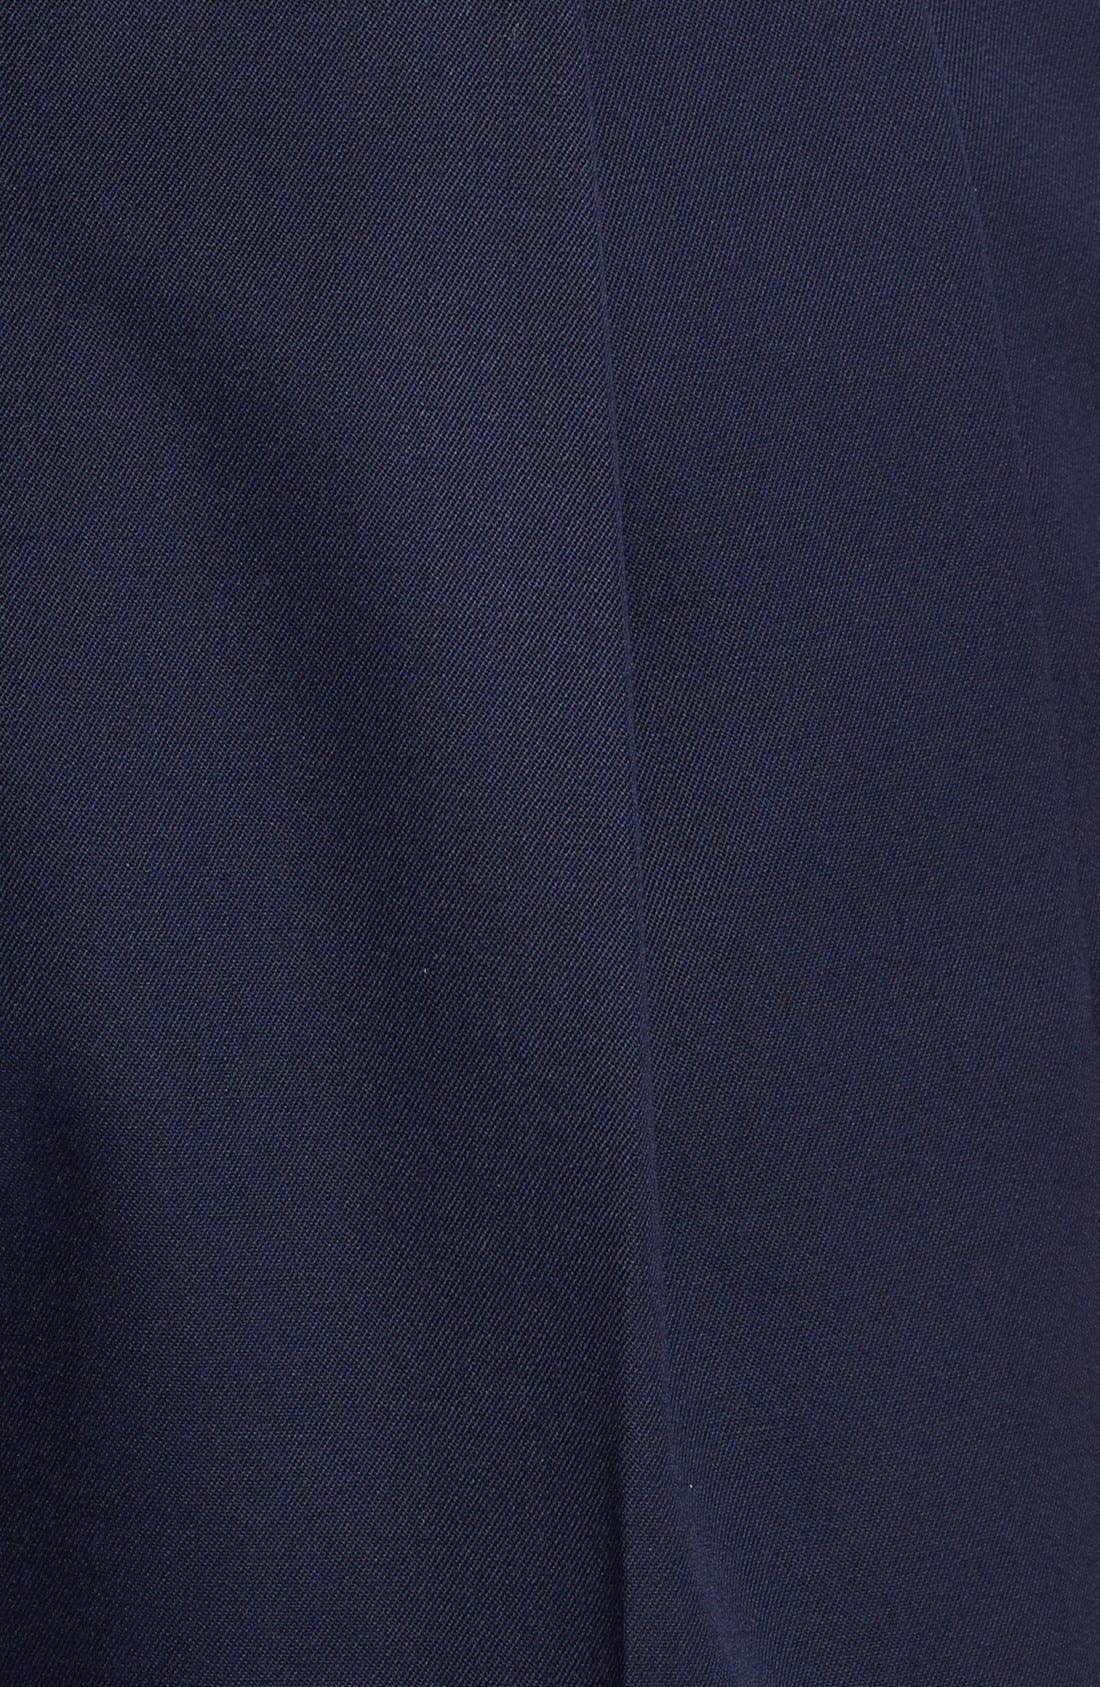 Pleated Super 100s Worsted Wool Trousers,                             Alternate thumbnail 17, color,